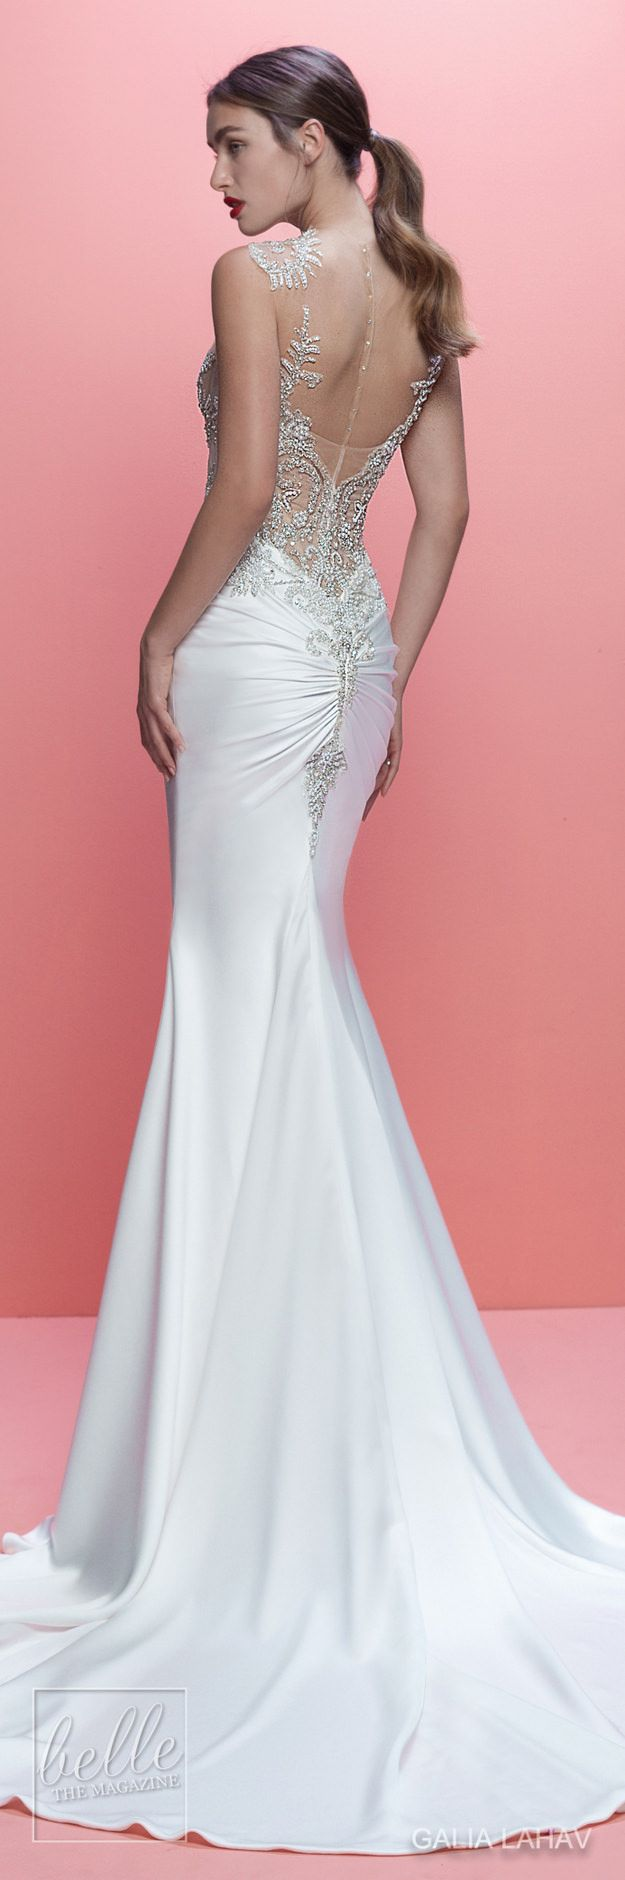 230 best Back Views and Skirts images on Pinterest | Bridal gowns ...